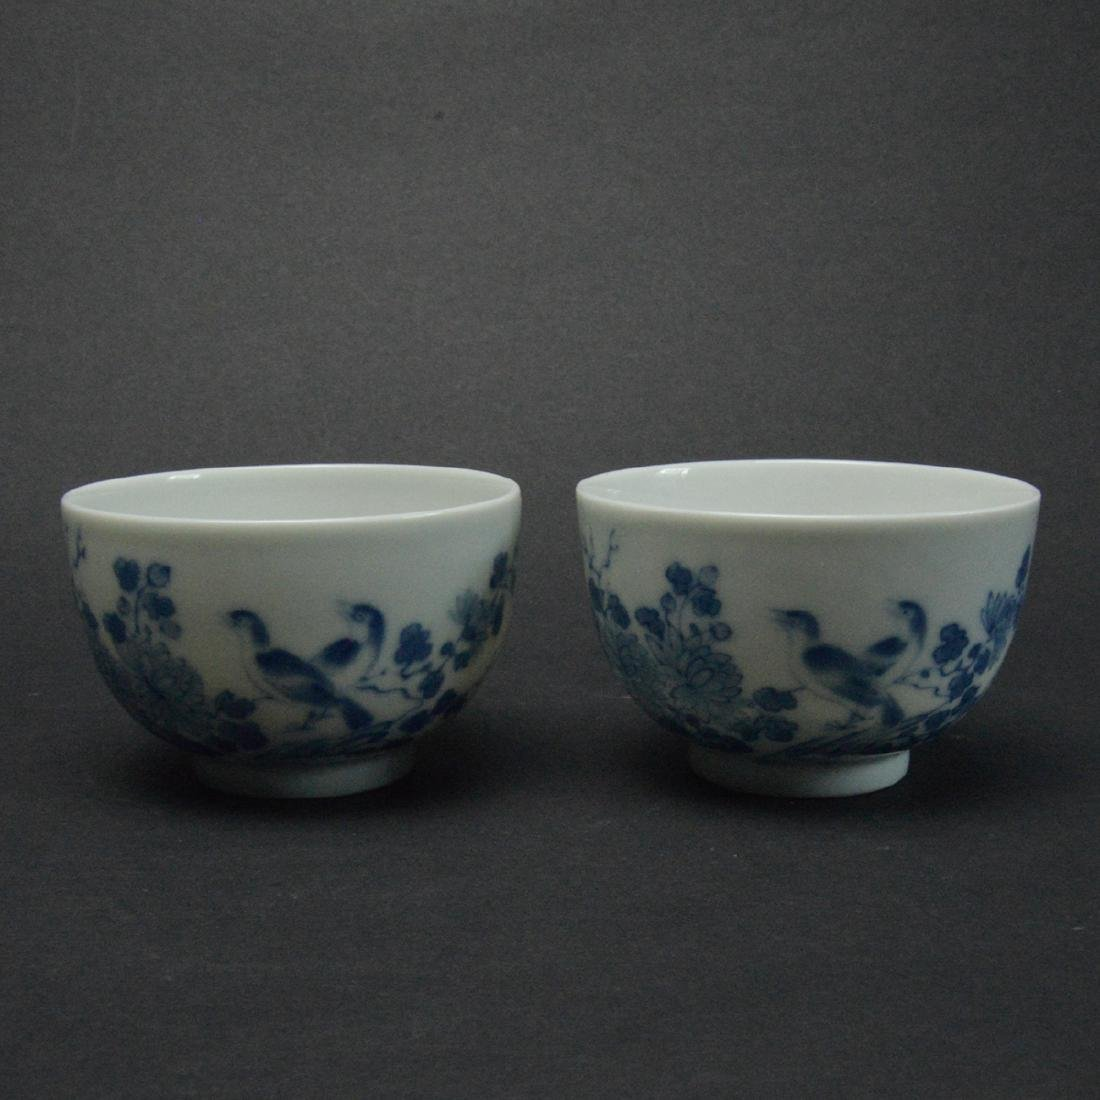 CHINESE BLUE AND WHITE PORCELAIN CUPS